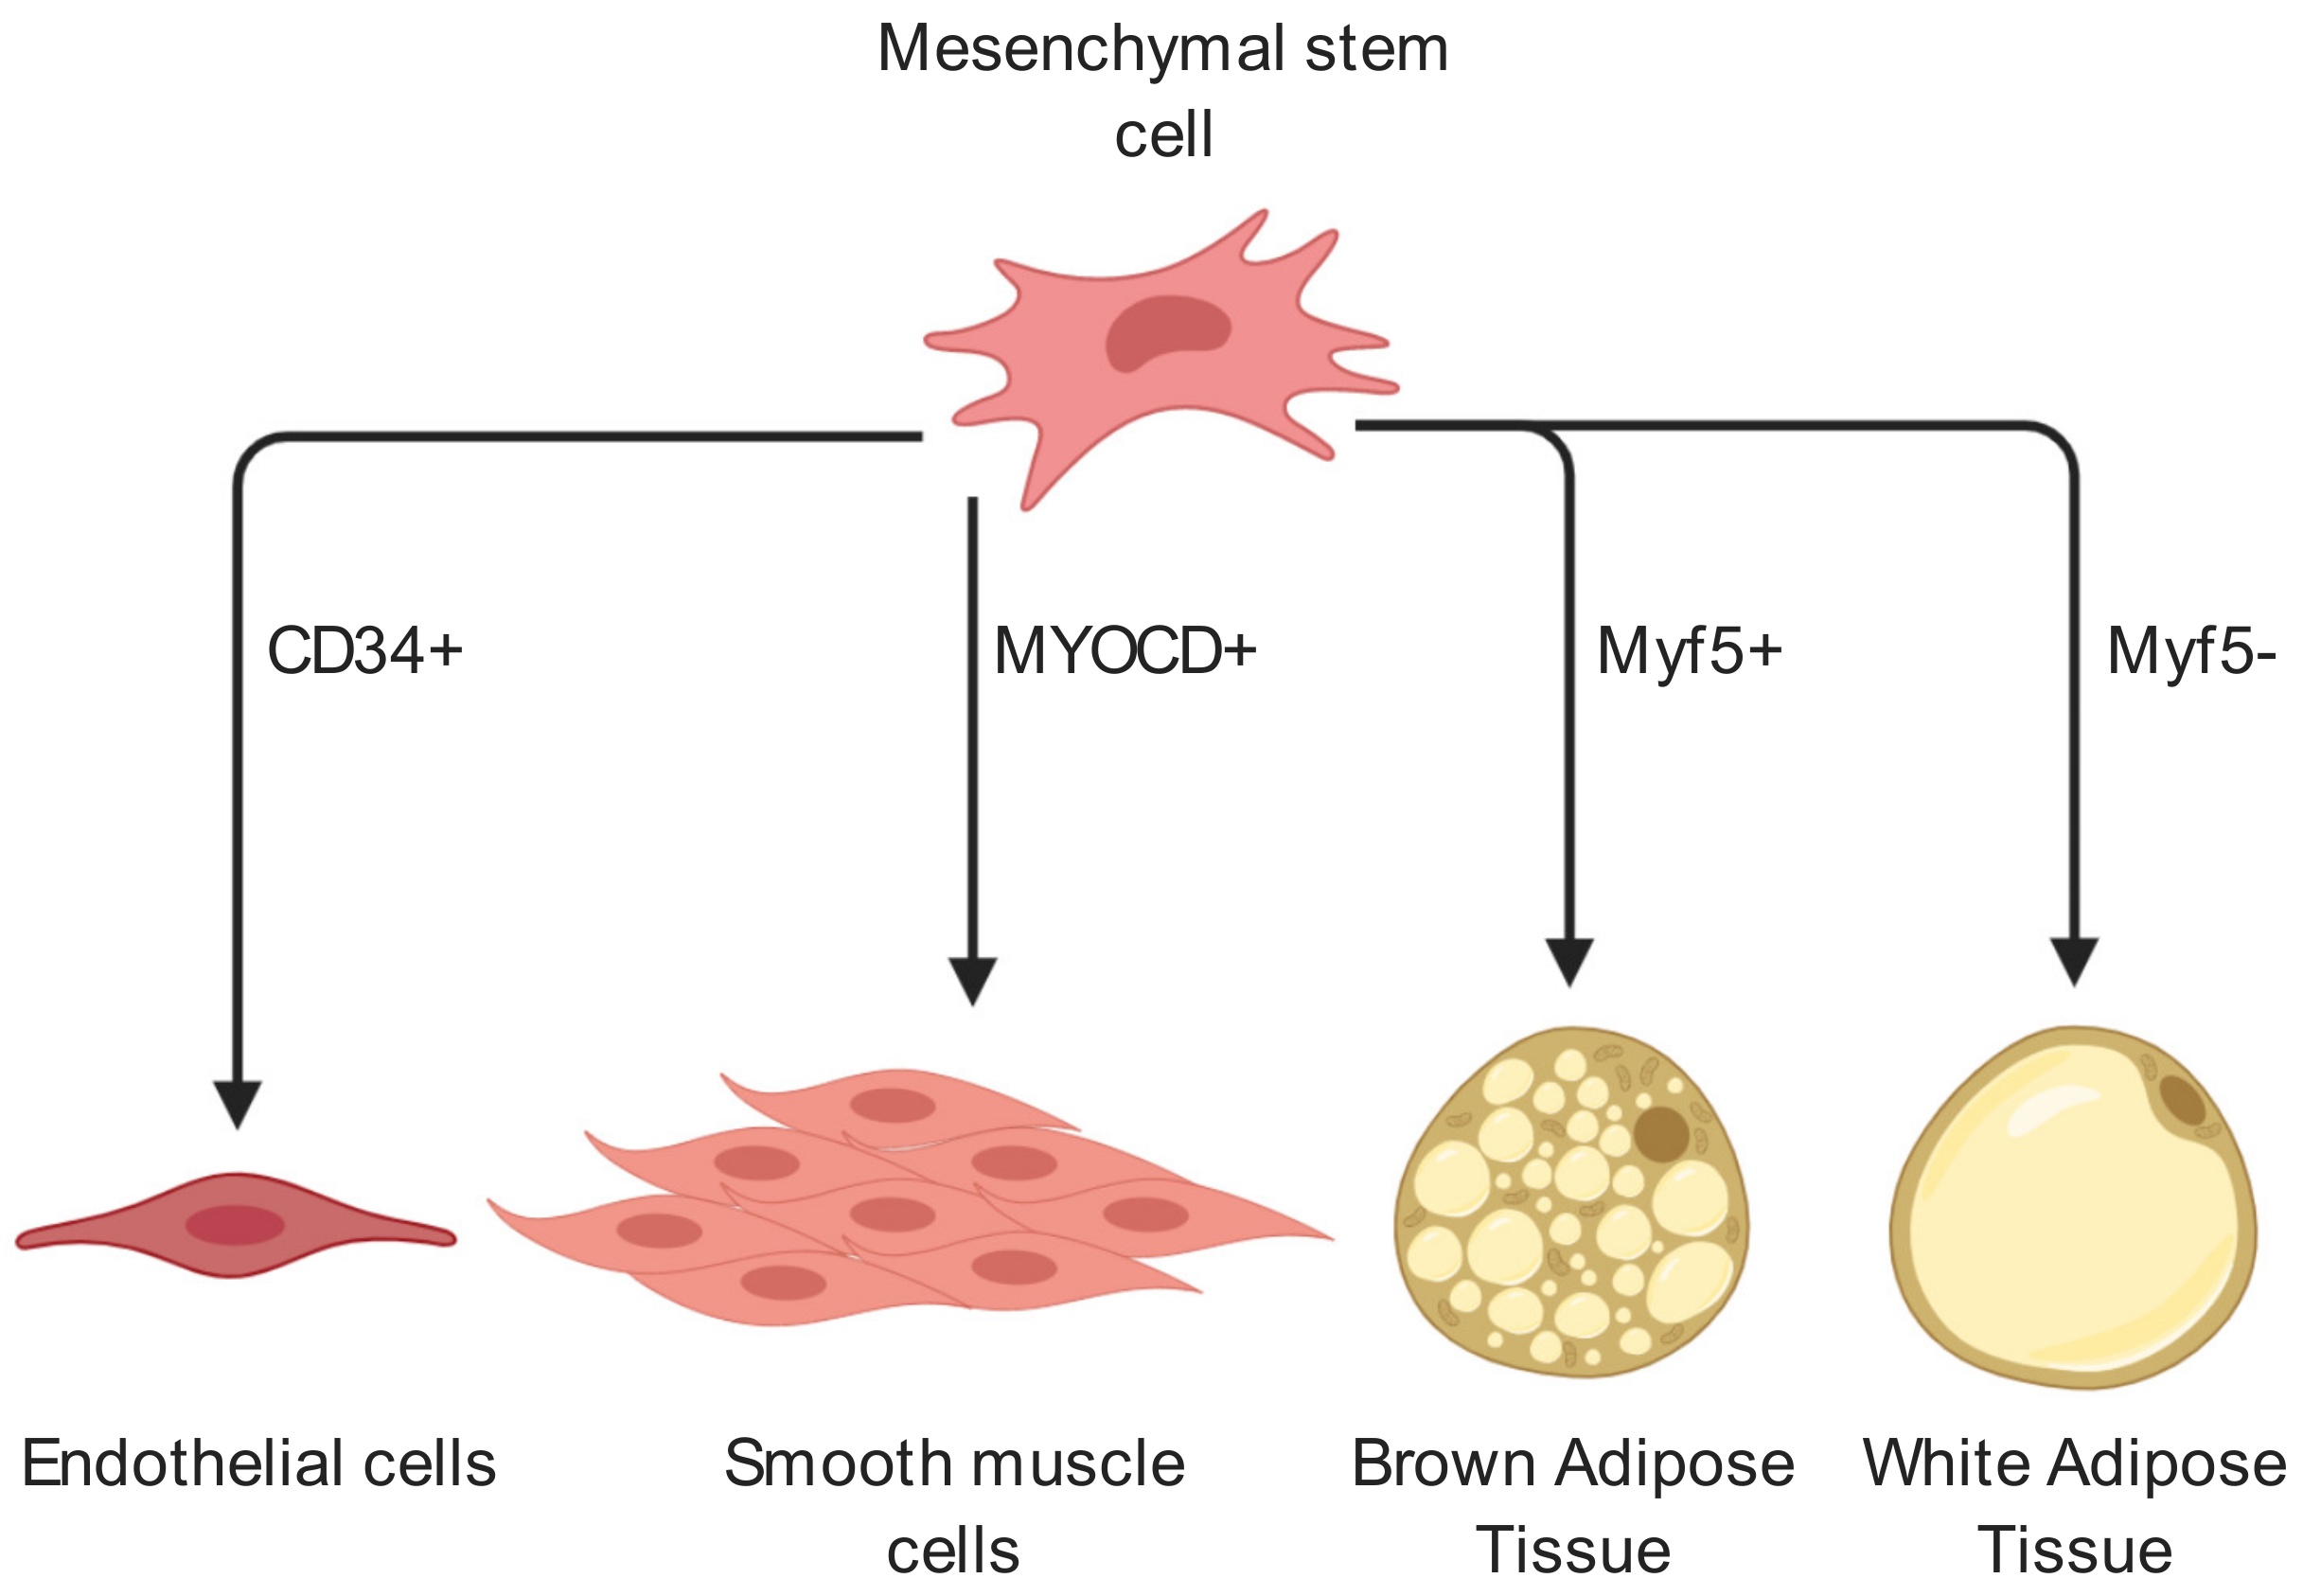 Ijms Free Full Text The Proliferation And Differentiation Of Adipose Derived Stem Cells In Neovascularization And Angiogenesis Html